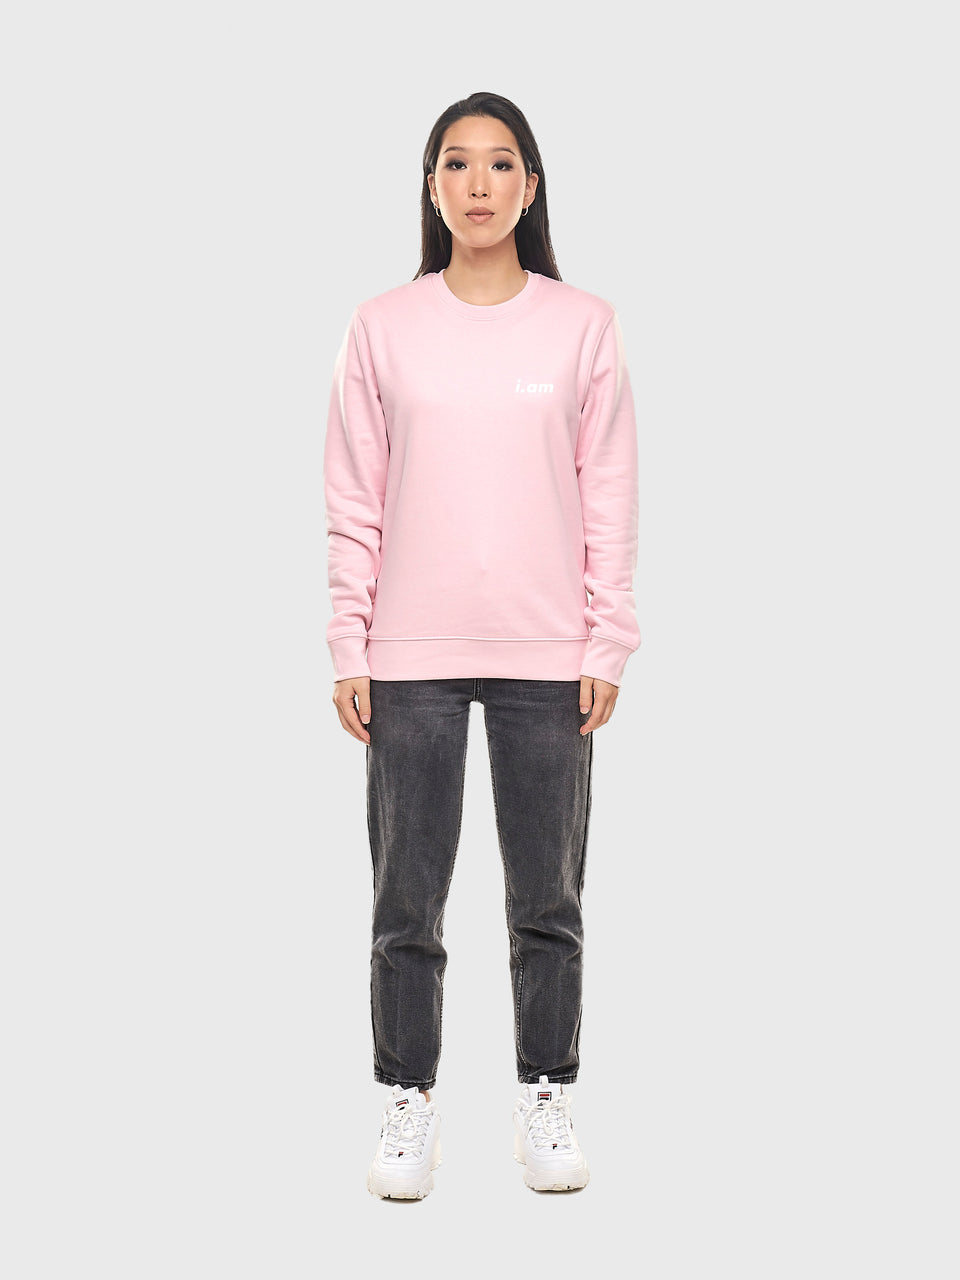 The connect - Pink - Unisex sweatshirt